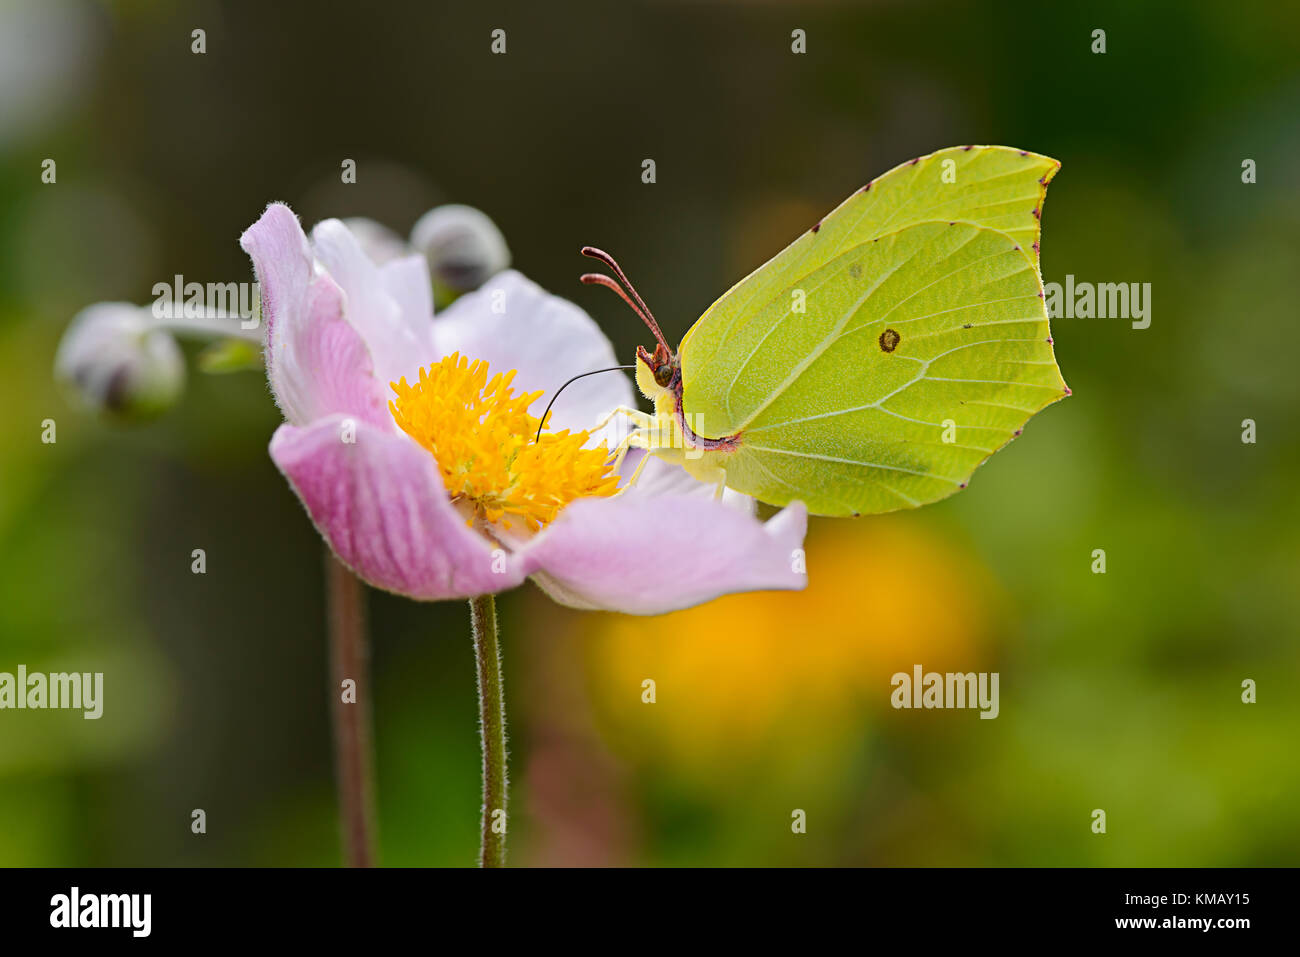 A yellow Brimstone butterfly ( Gonepteryx rhamni ) feeding on nectar from a flowering japanese anemone. - Stock Image